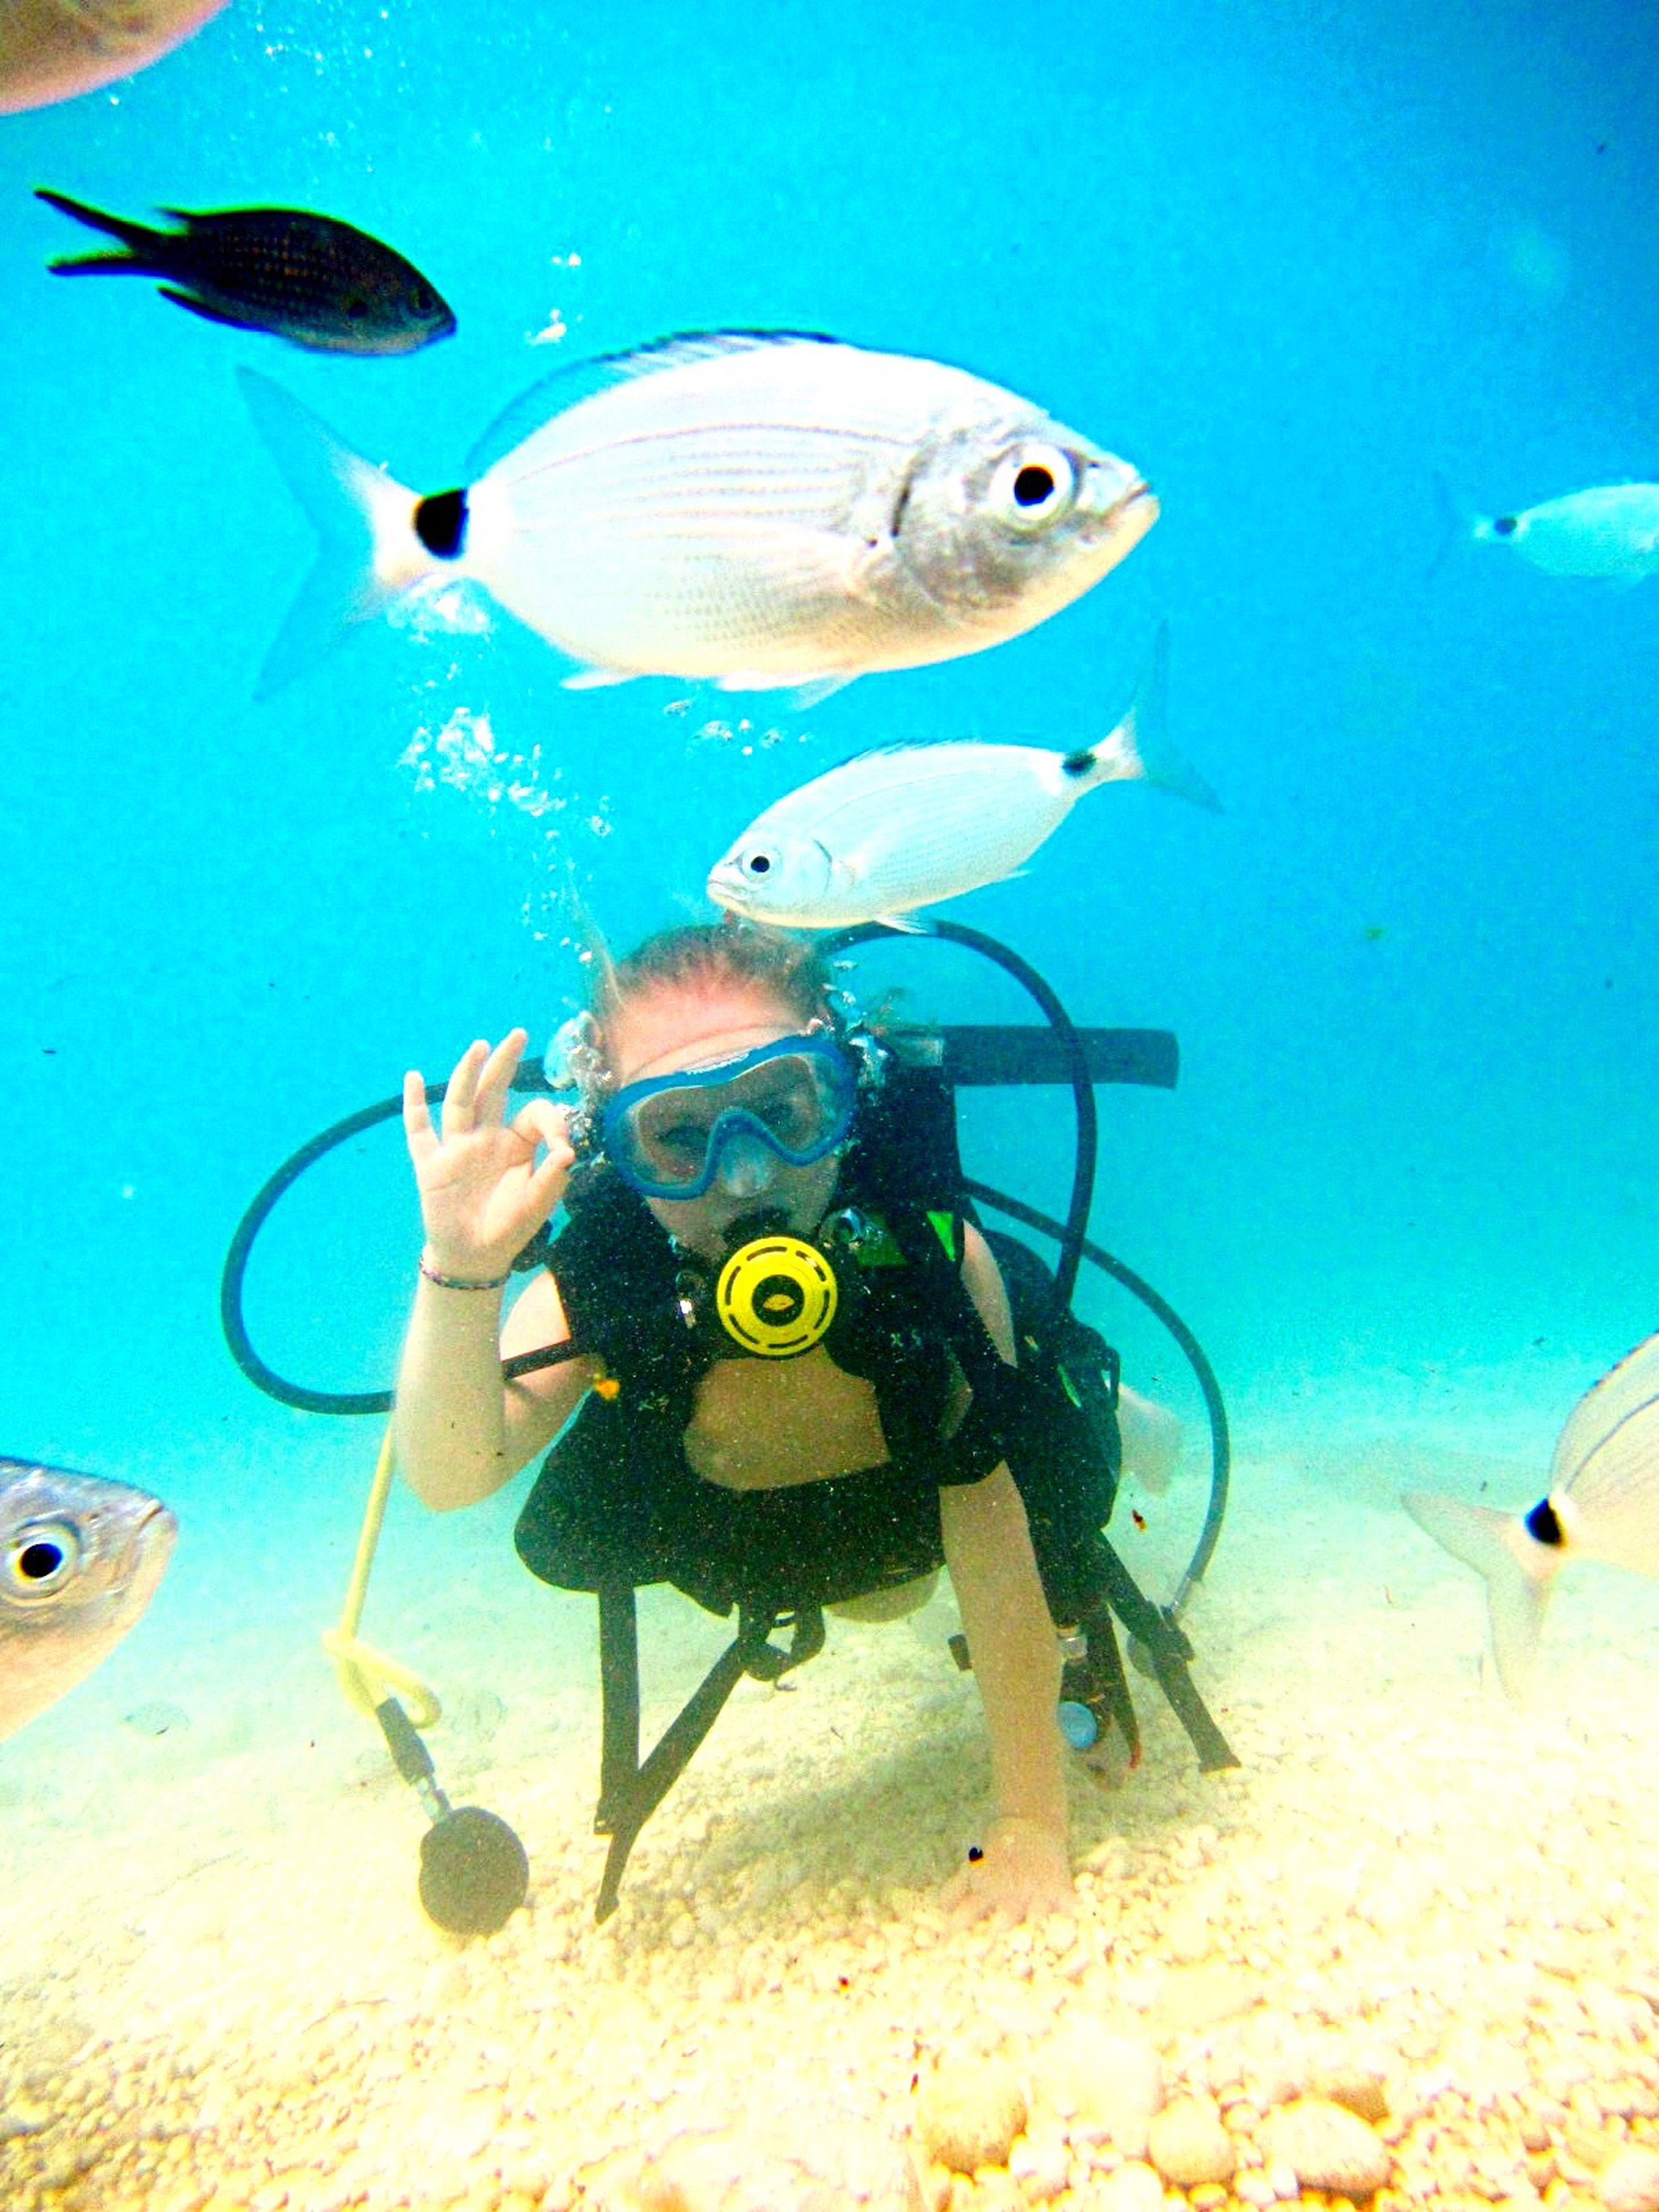 underwater, sea, undersea, fish, swimming, scuba diving, water, one animal, sea life, recreational pursuit, animal themes, diving equipment, adventure, animal wildlife, one person, nature, outdoors, close-up, aquarium, day, people